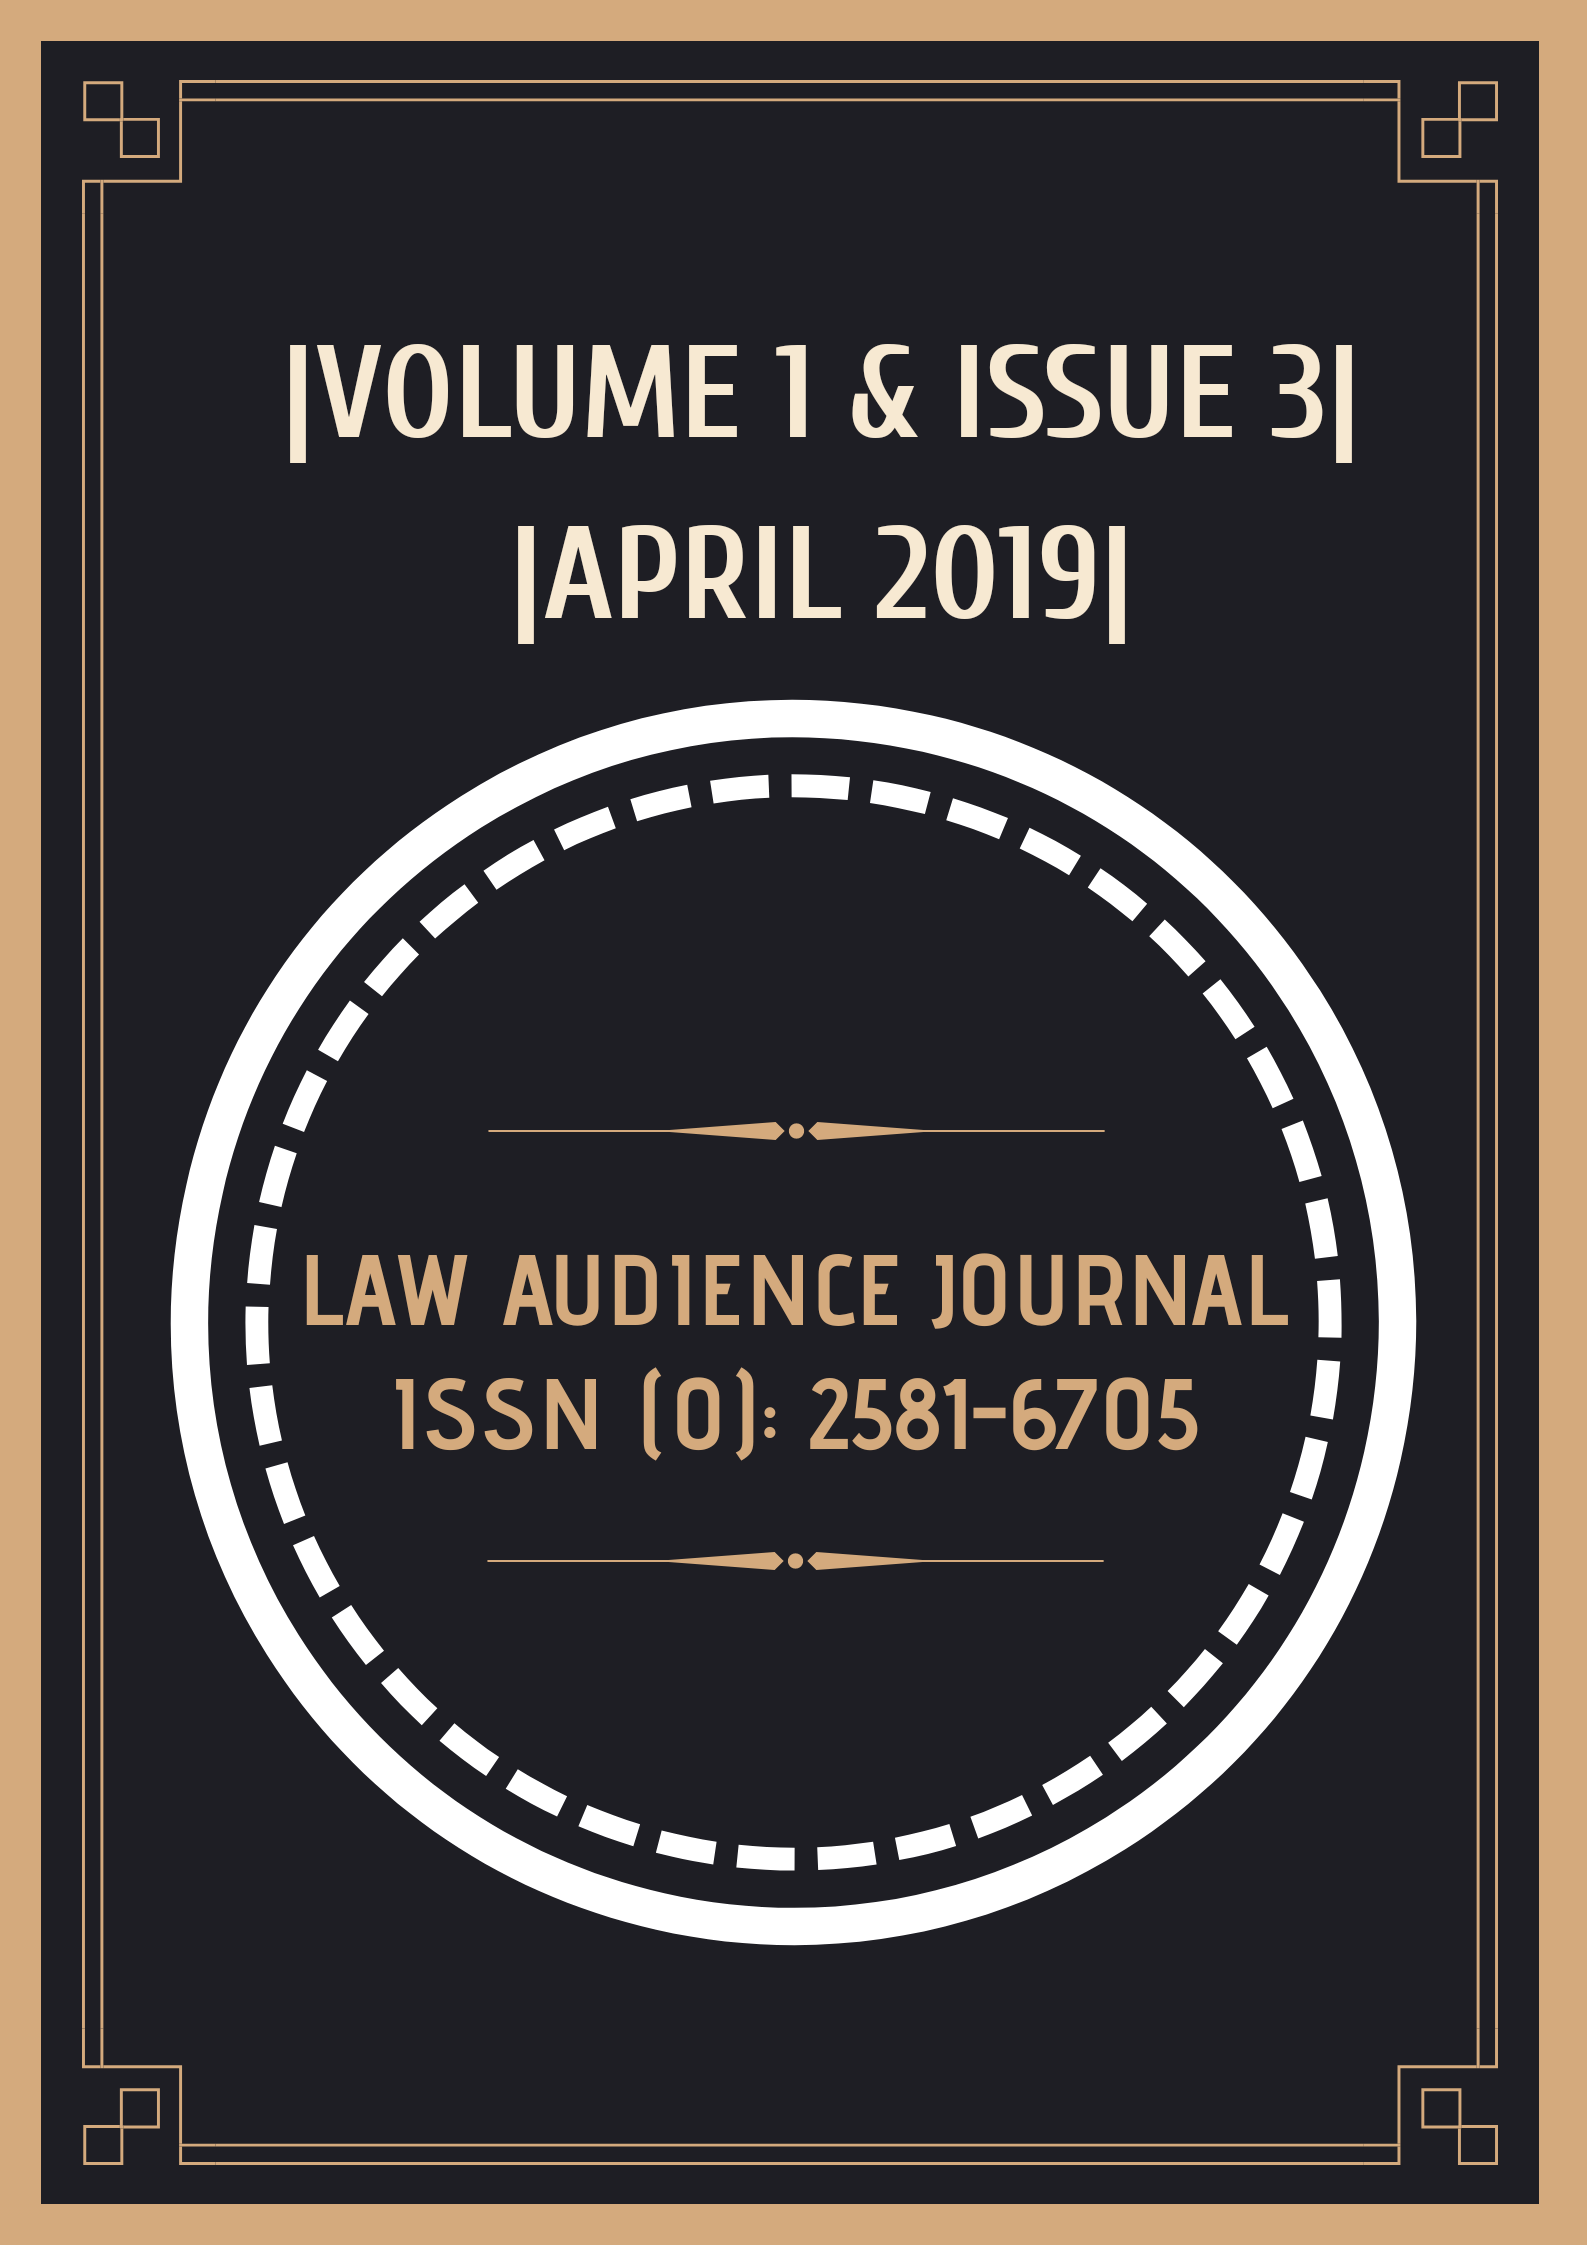 Call for Paper: Law Audience Journal (Vol 1, Issue 3): Submit by March 31